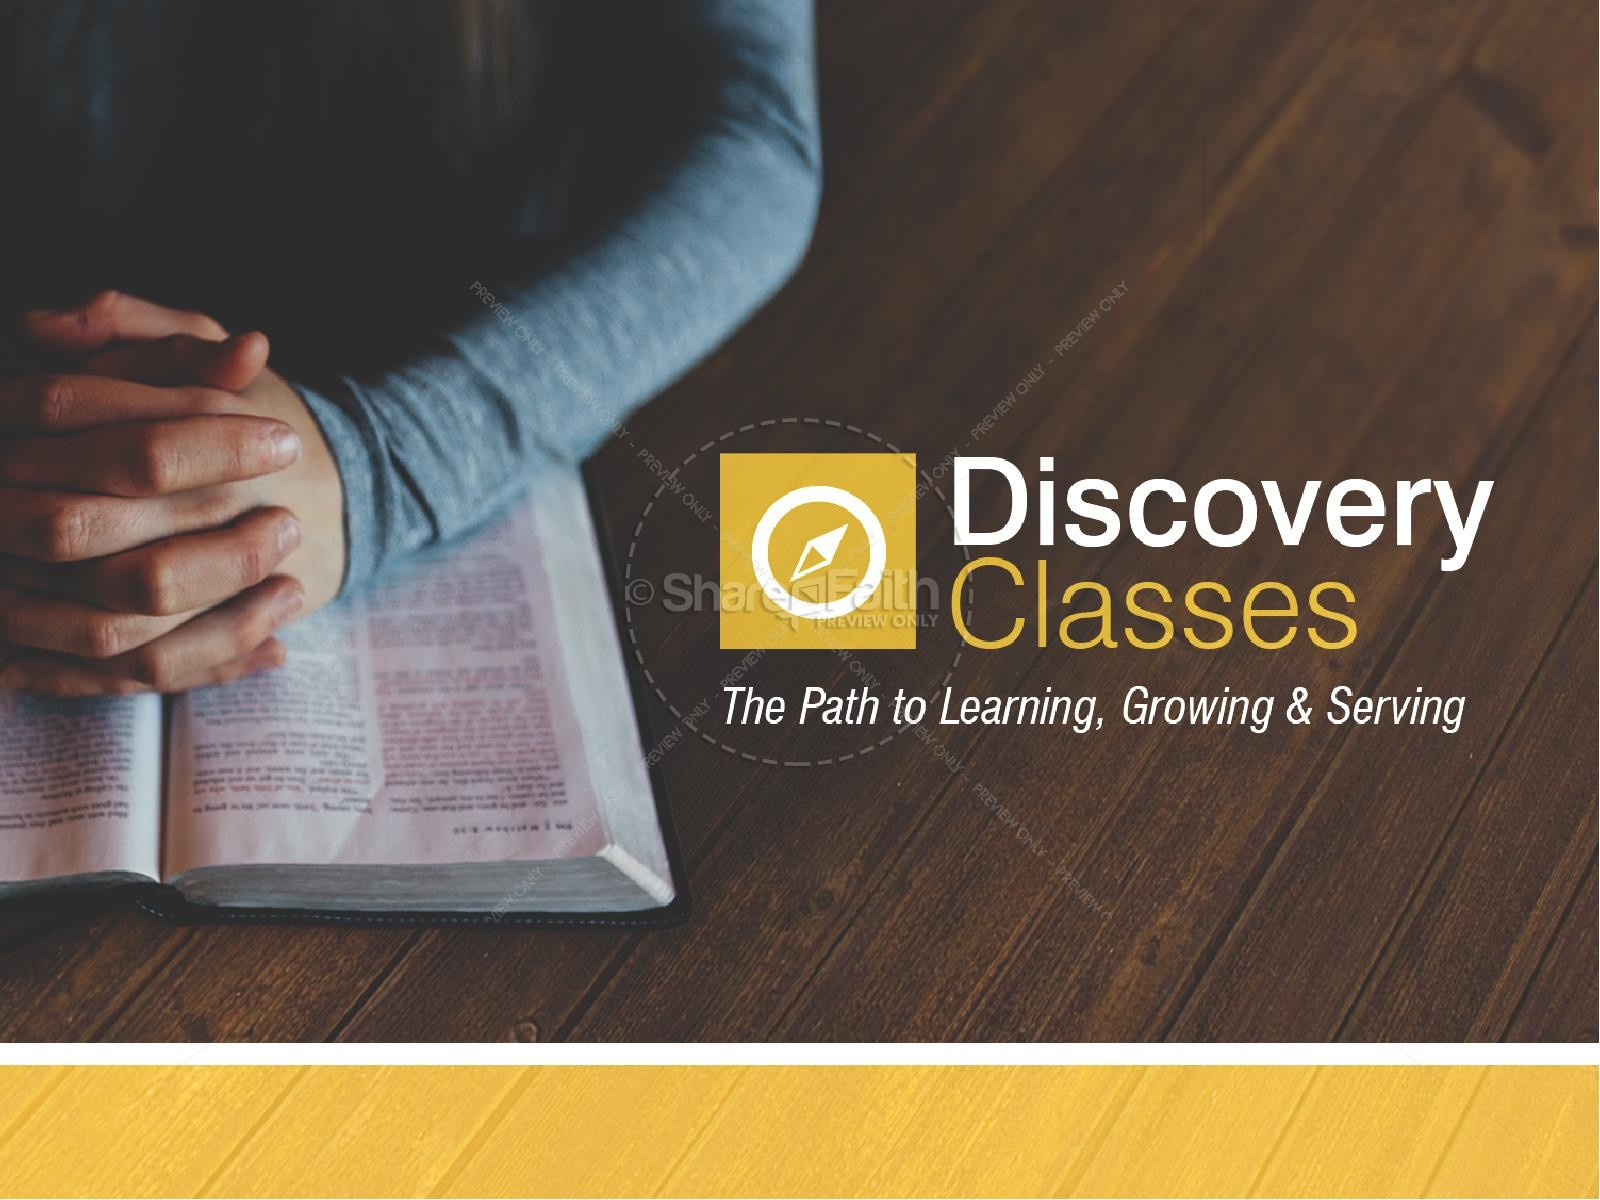 Discovery Classes Ministry PowerPoint